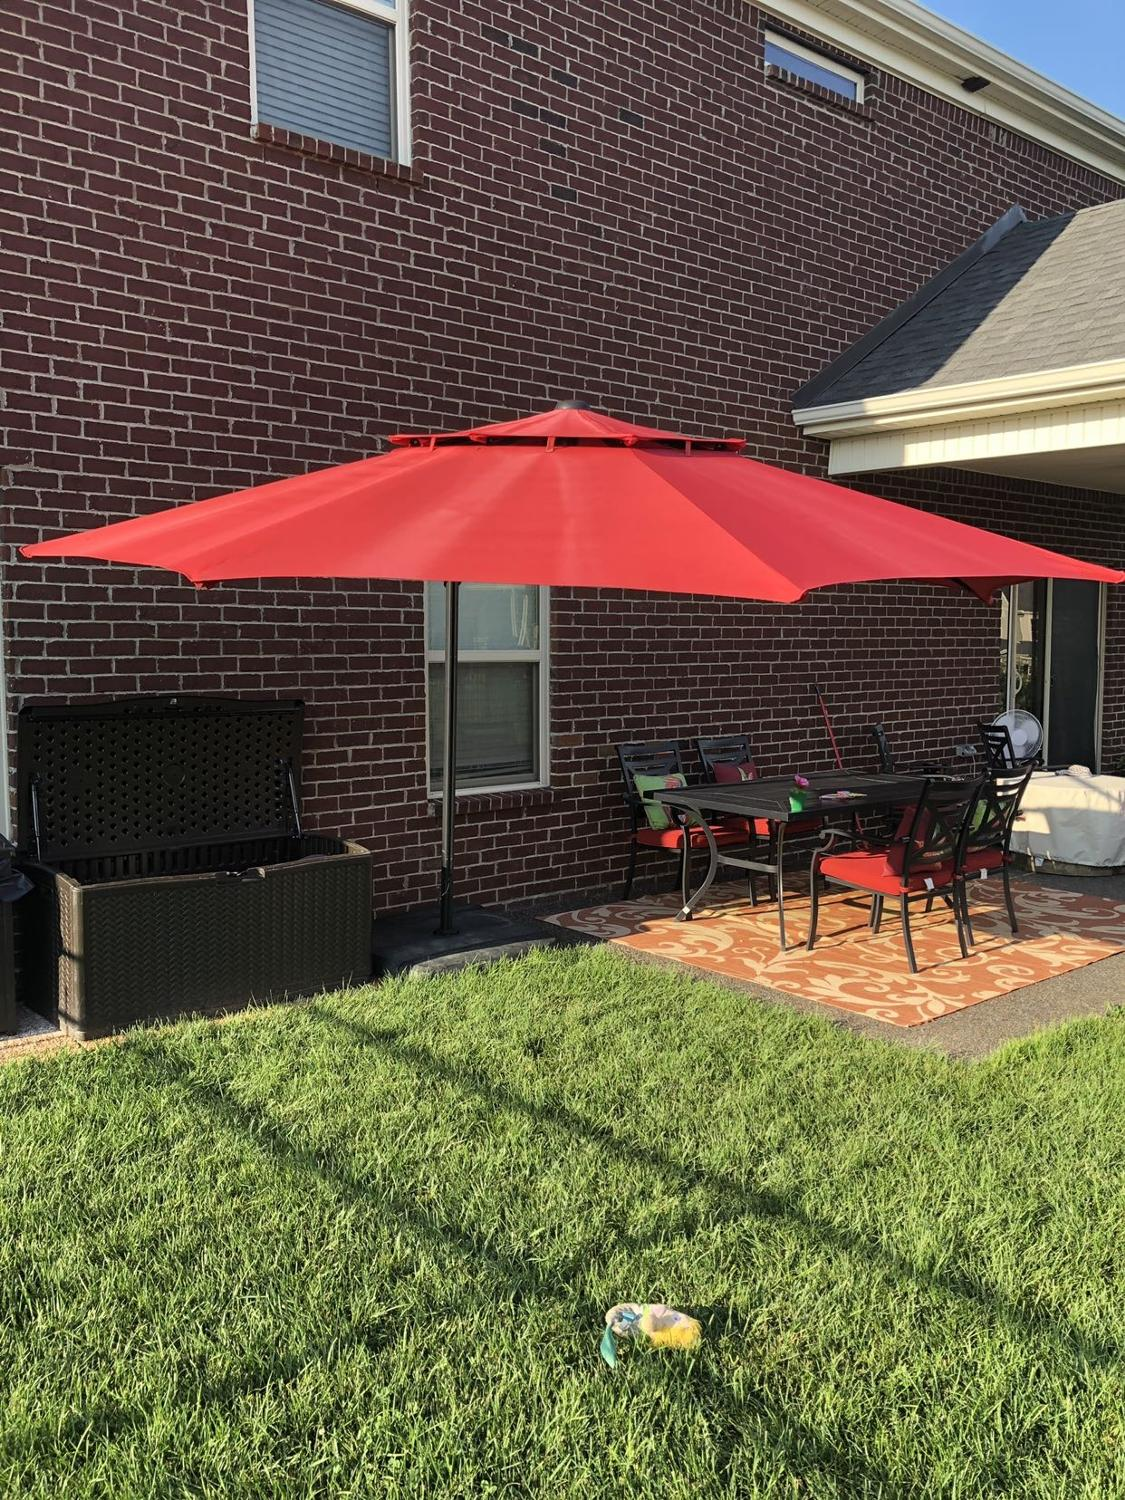 Find More Patio Stand Alone Red Umbrella For Sale At Up To